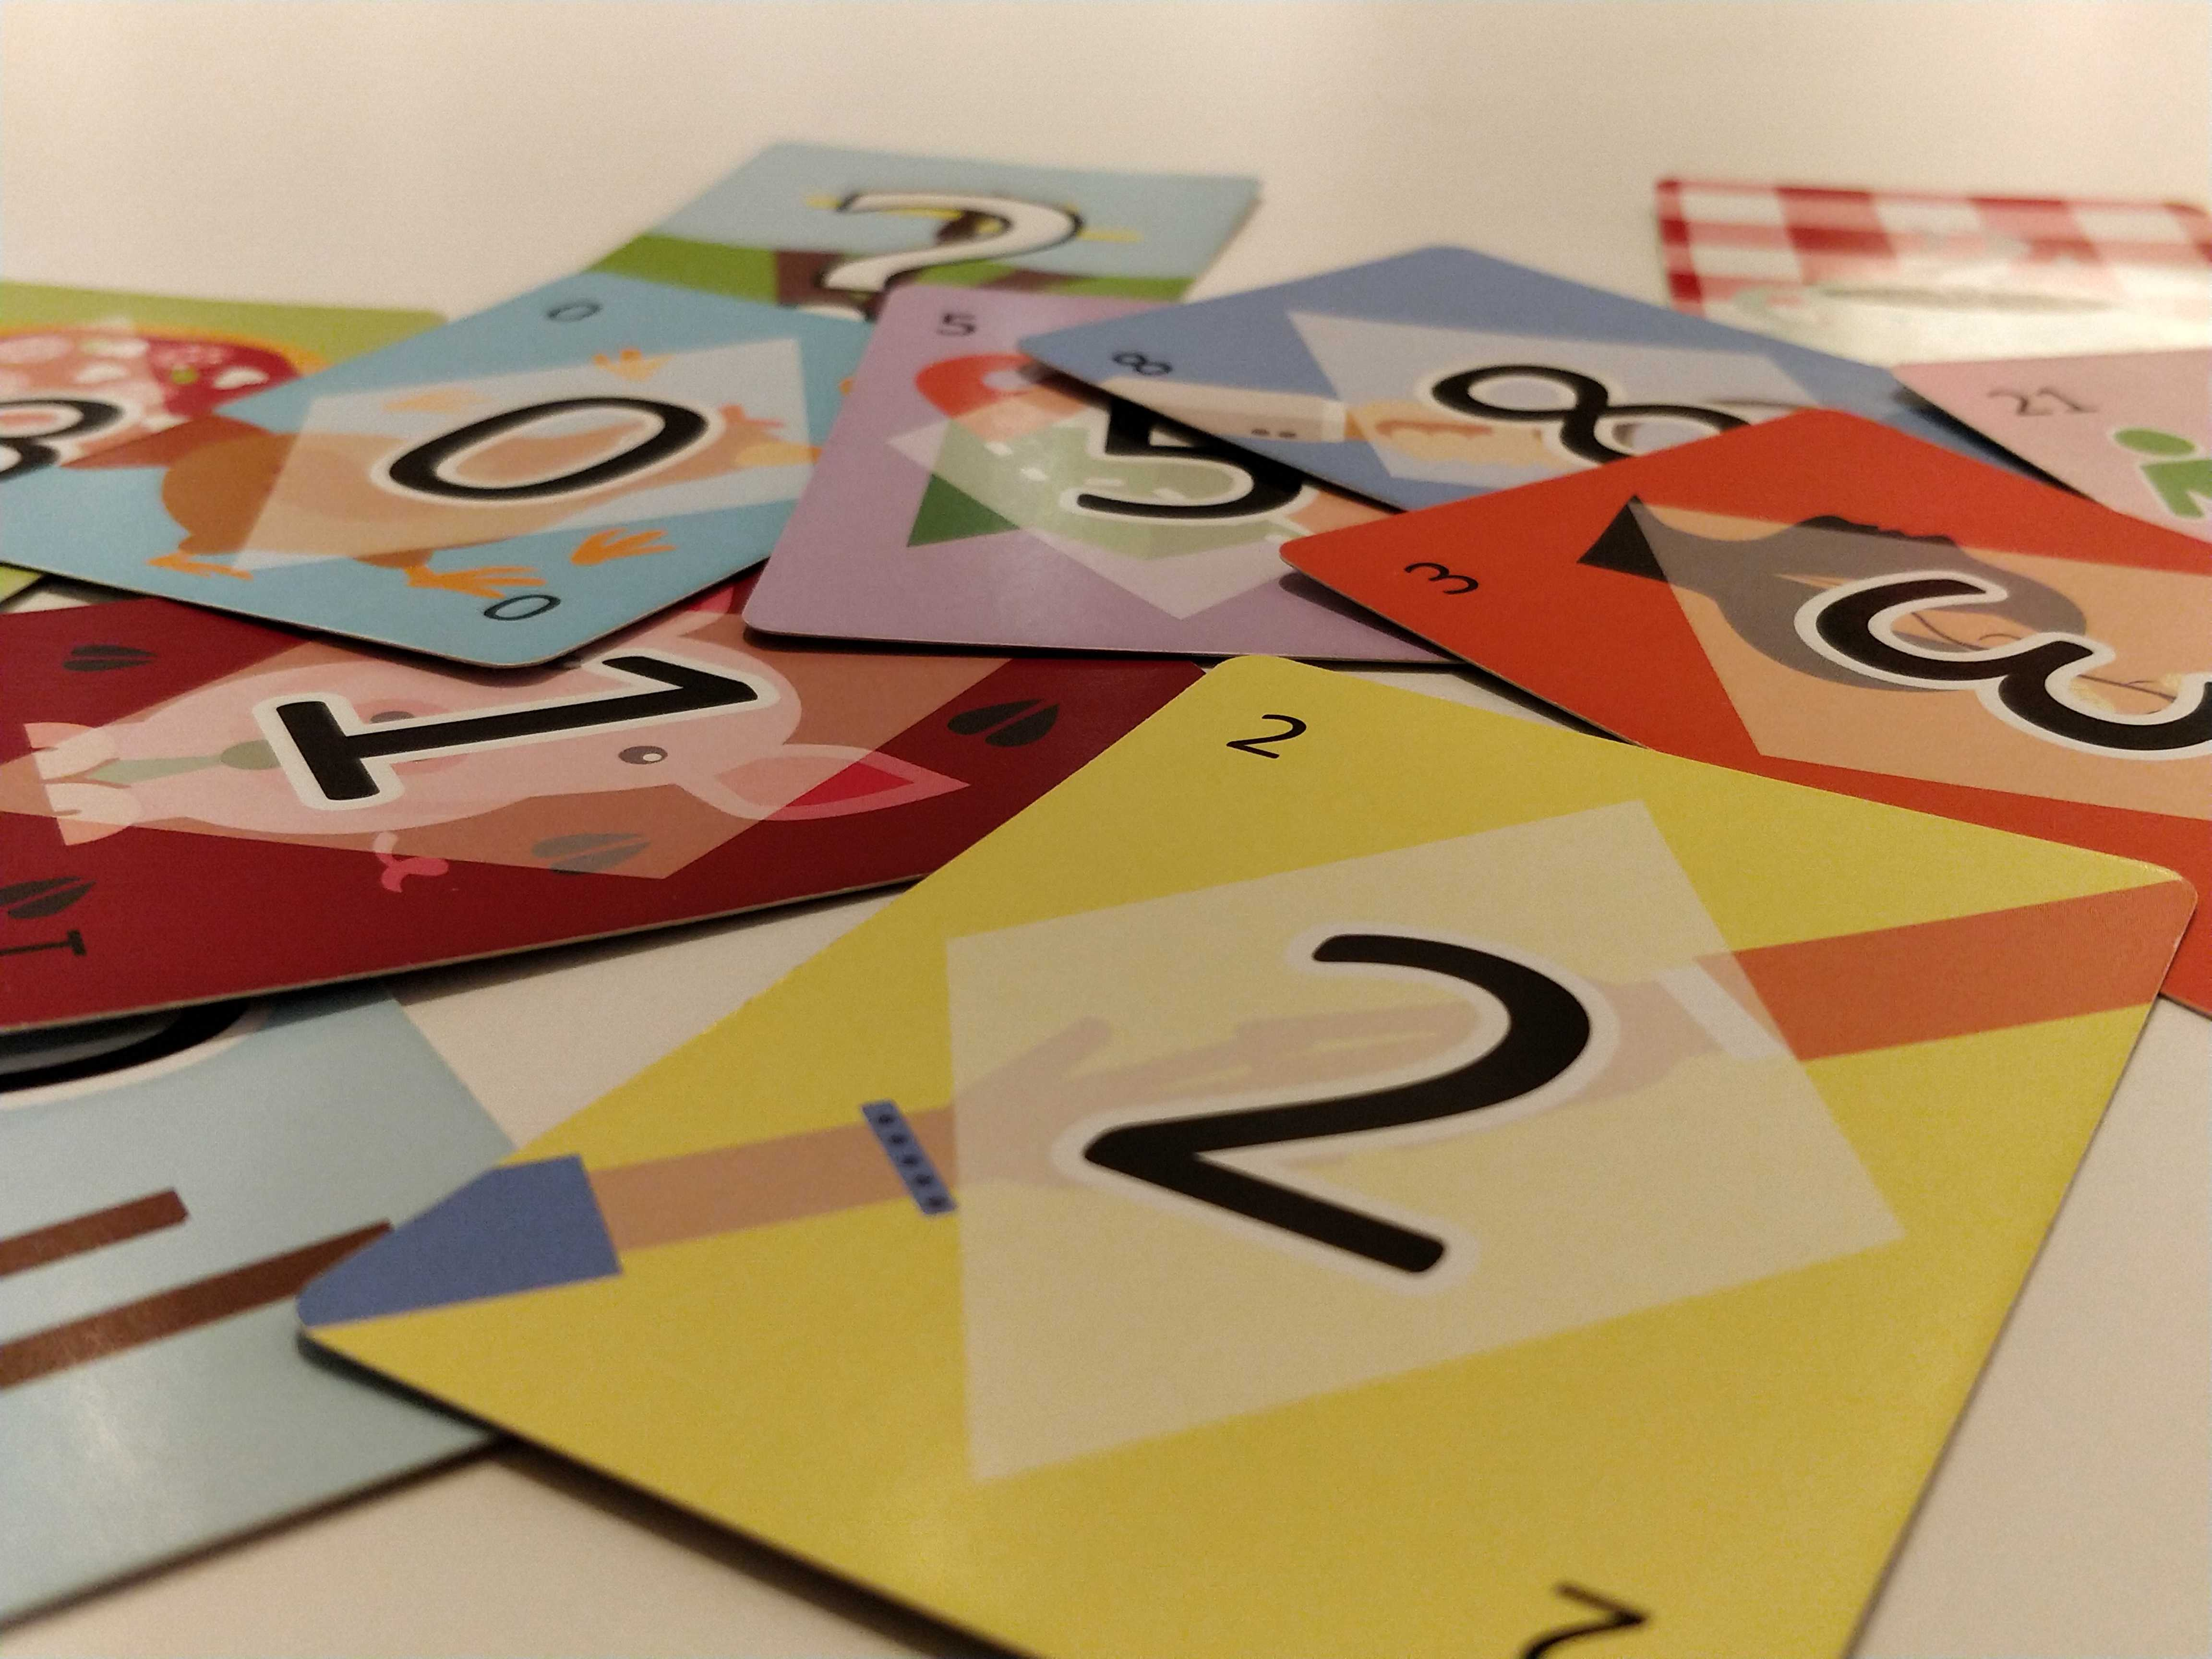 photo of planning poker cards showing numbers from the Fibonacci sequence